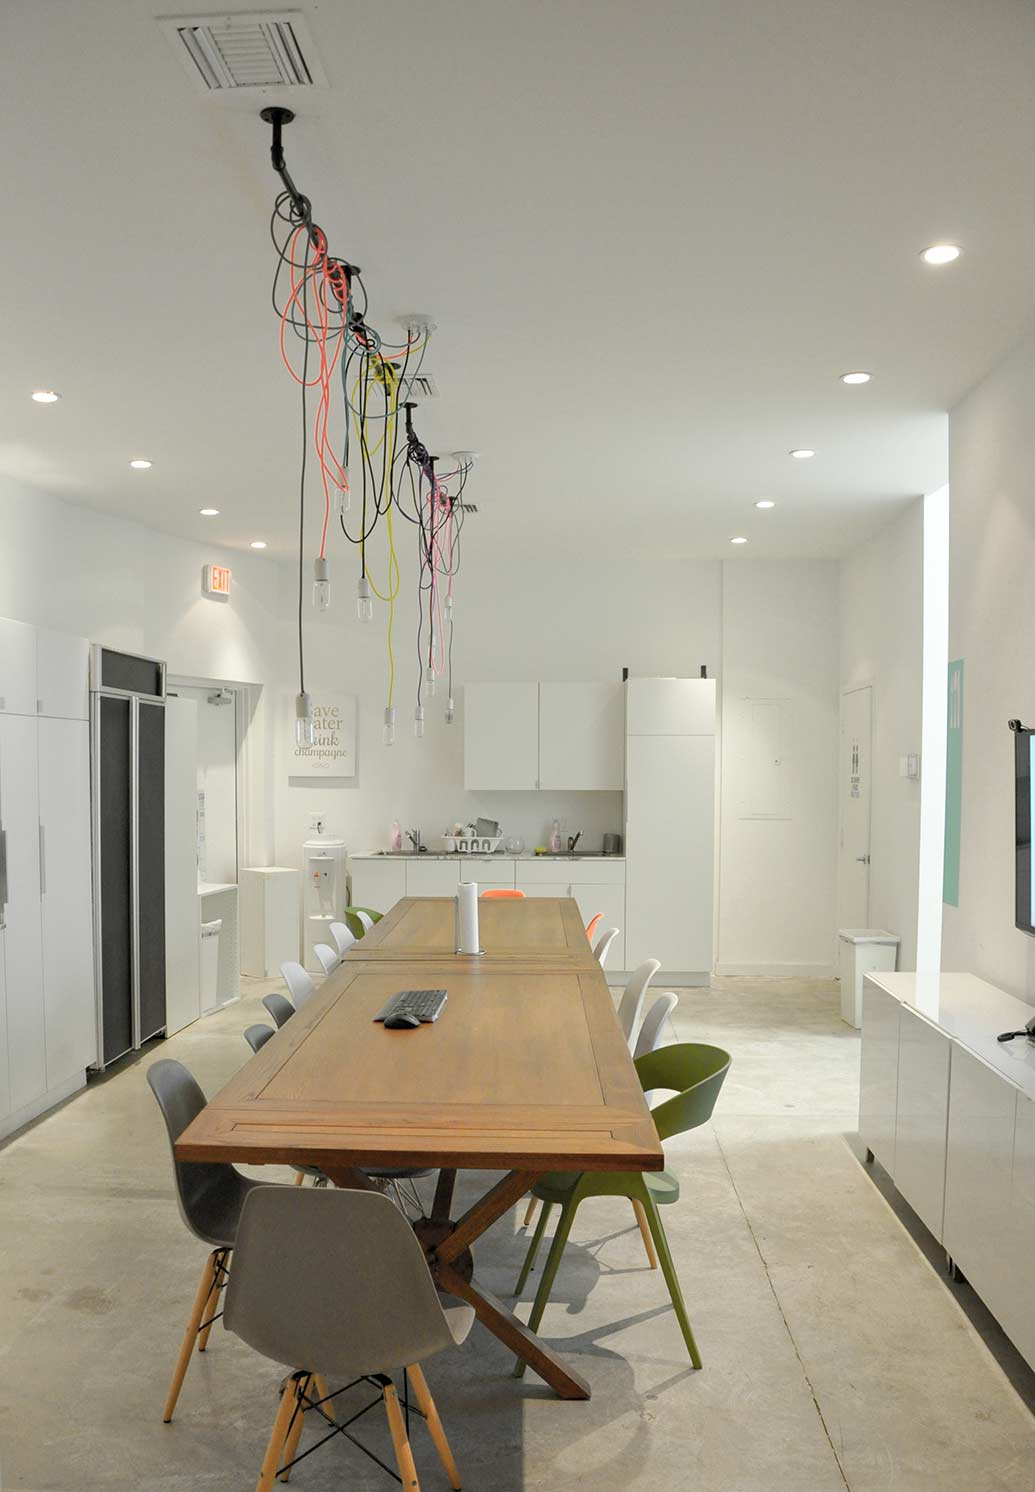 Florida interior design studio rightly illuminated with CASA LIGHTING AND BULBS essentials